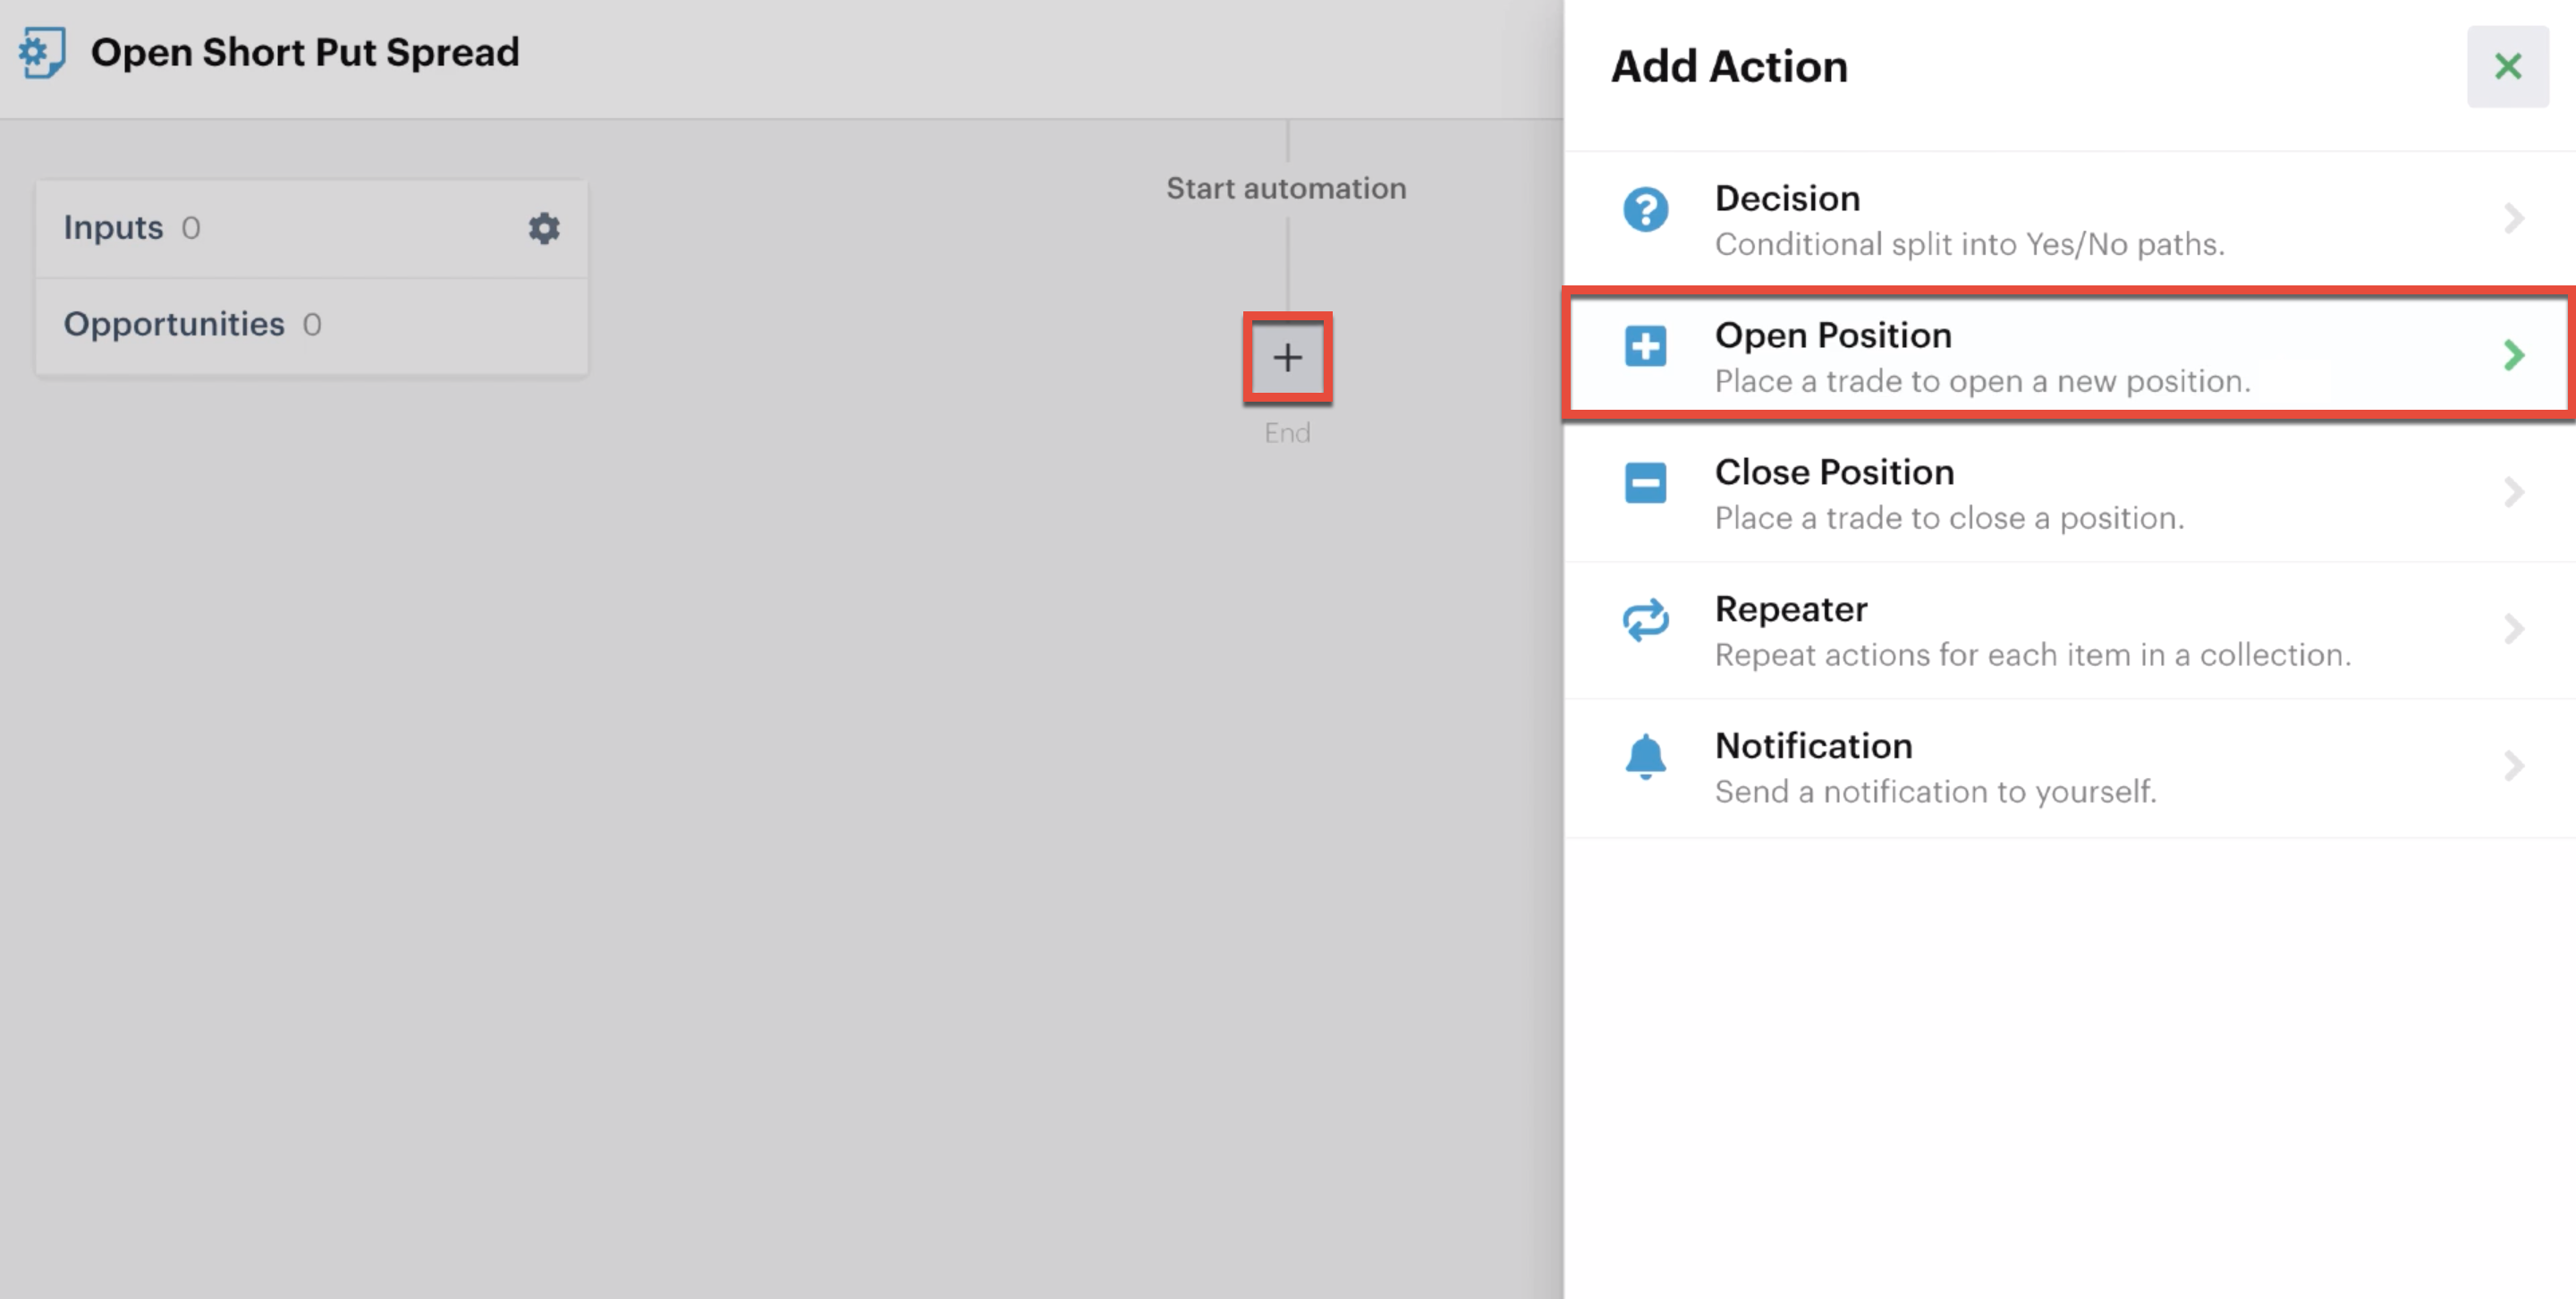 Adding an open position action